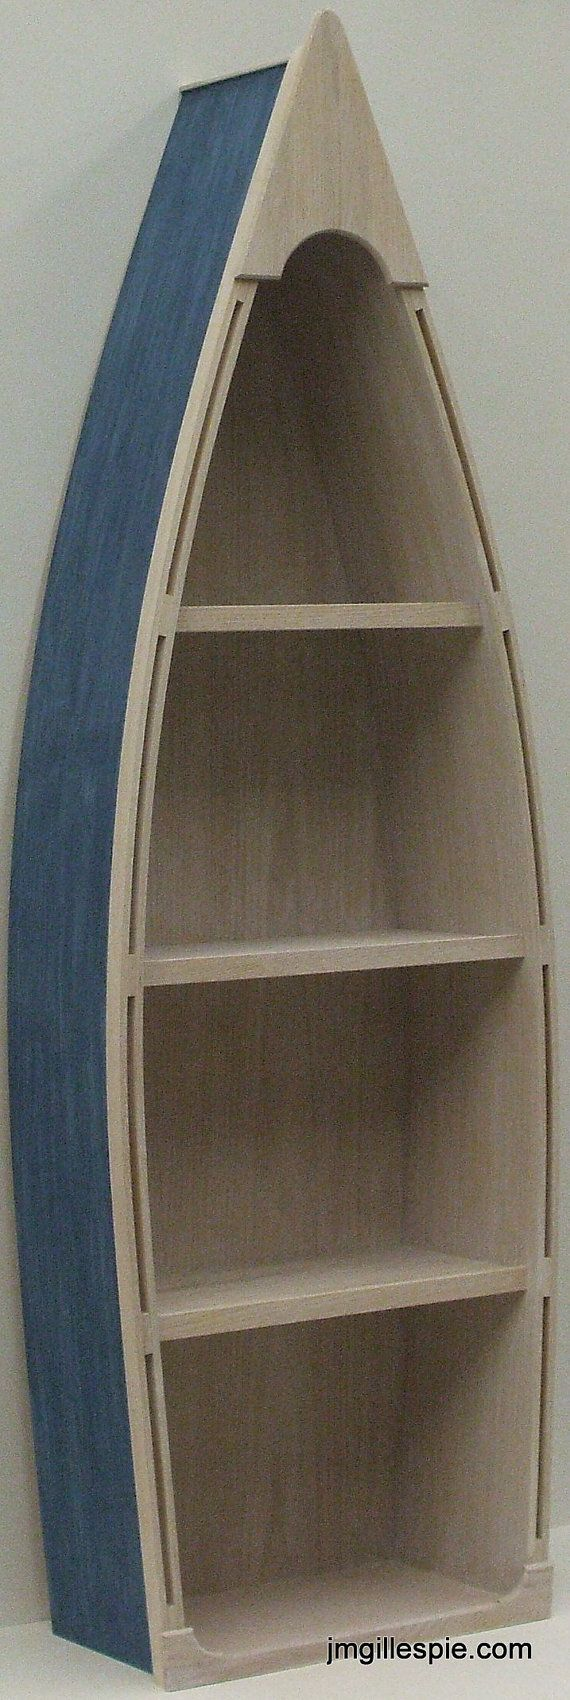 5 Foot blue row Boat Bookshelf Bookcase shelves skiff schooner canoe shelf nautical man cave Dorey kids room